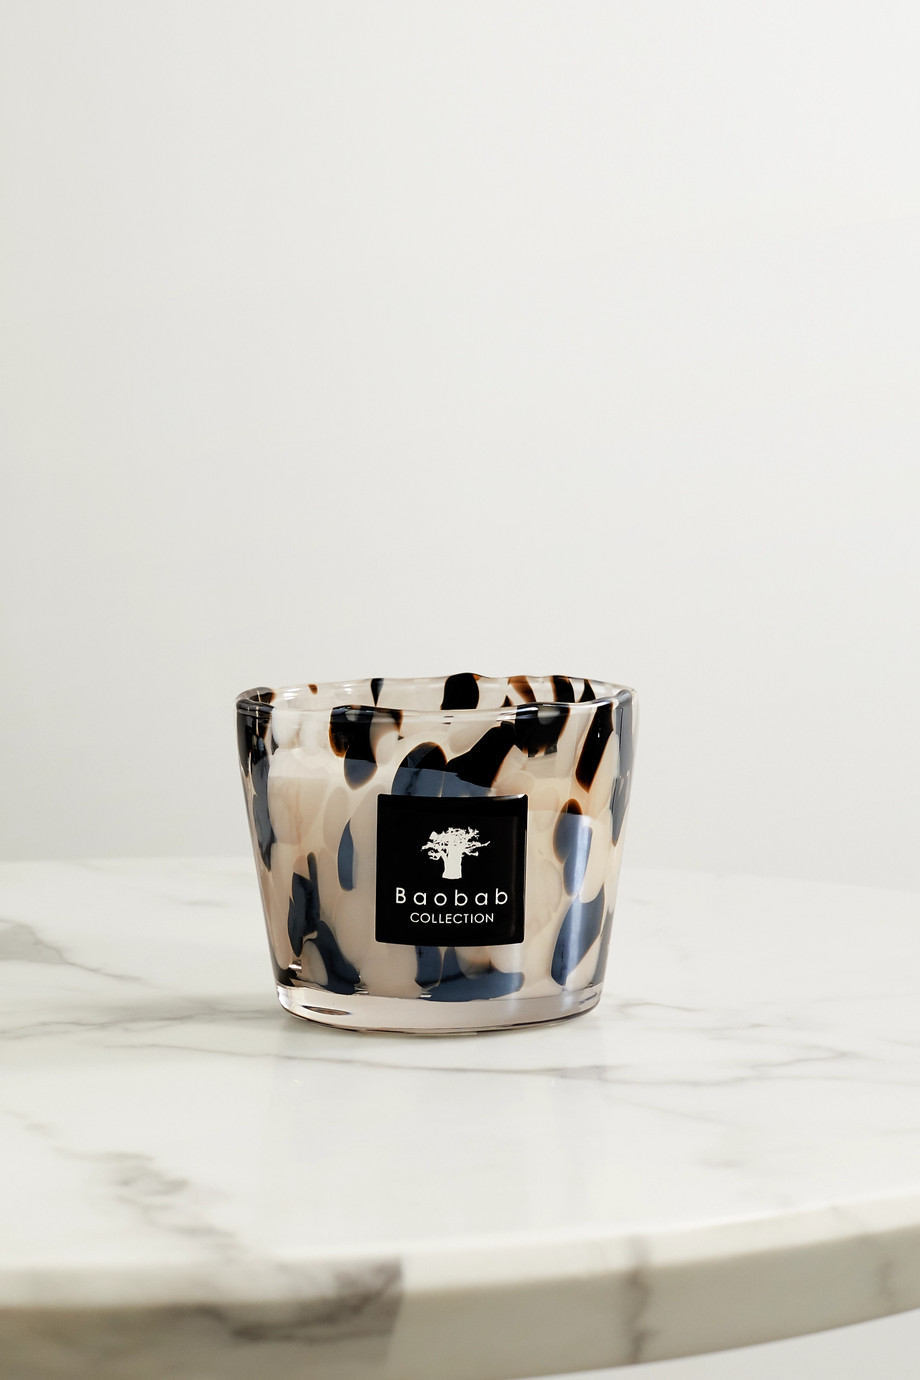 BAOBAB COLLECTION Black Pearls Max 10 scented candle, 1.3kg